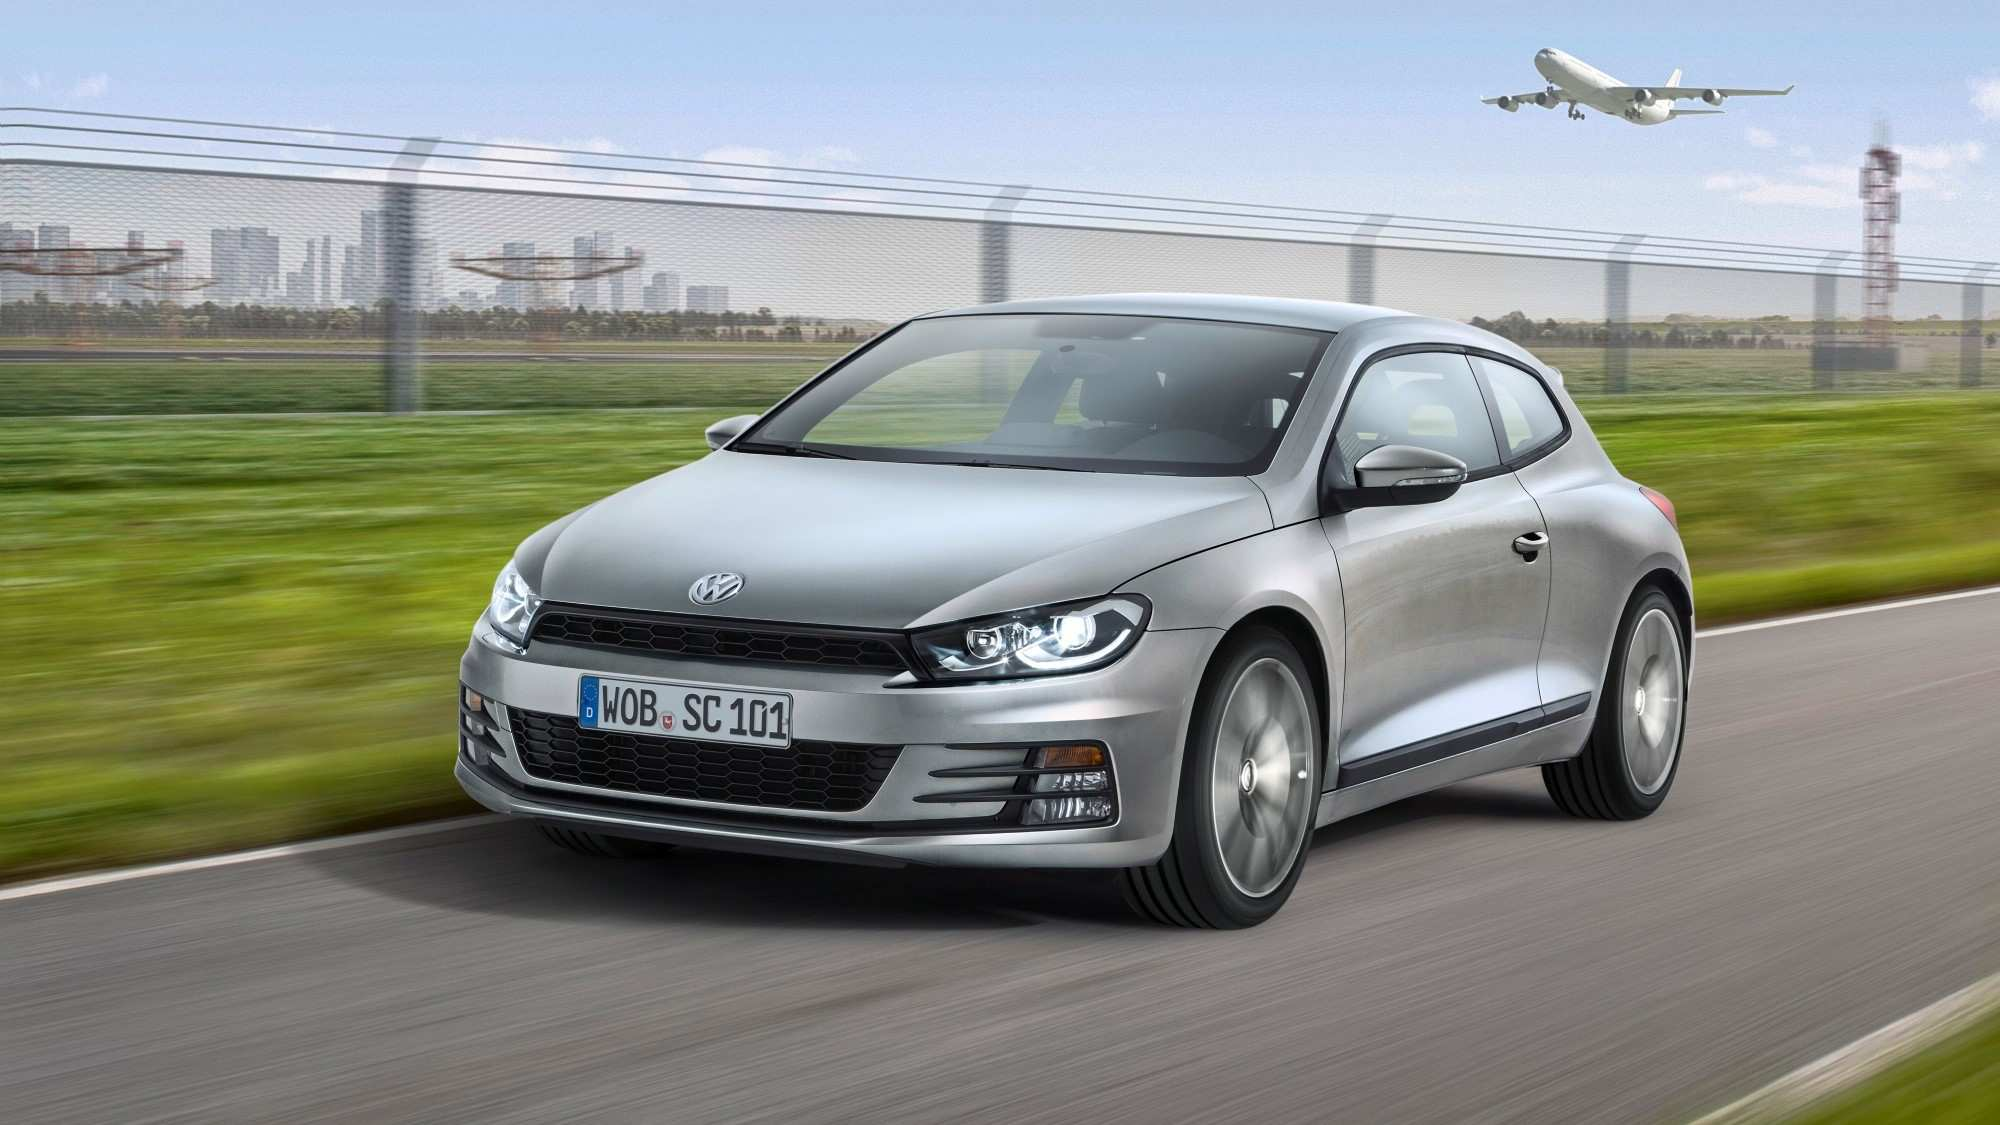 82 The 2020 Volkswagen Scirocco Exterior And Interior